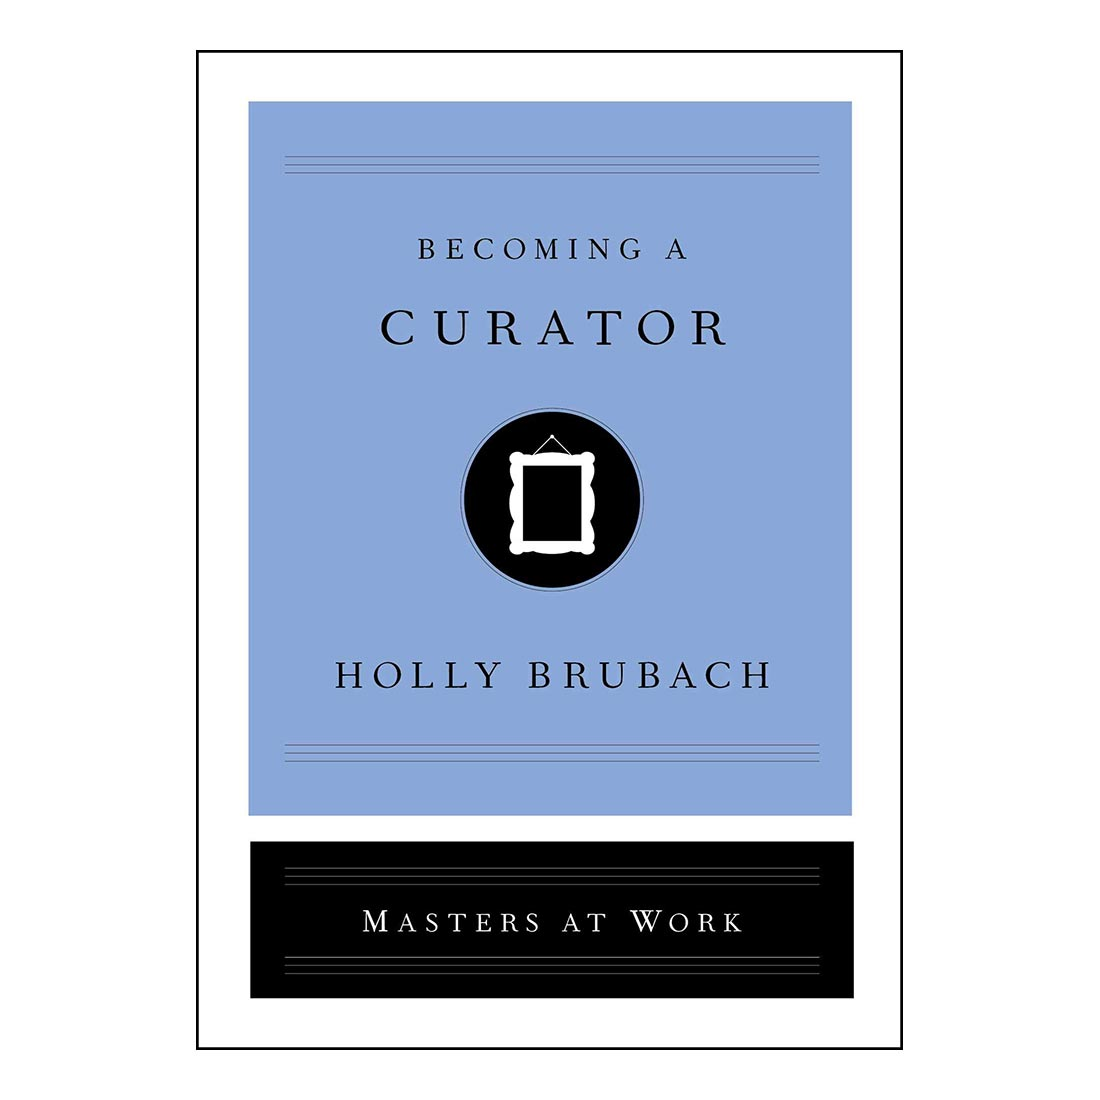 Becoming a Curator